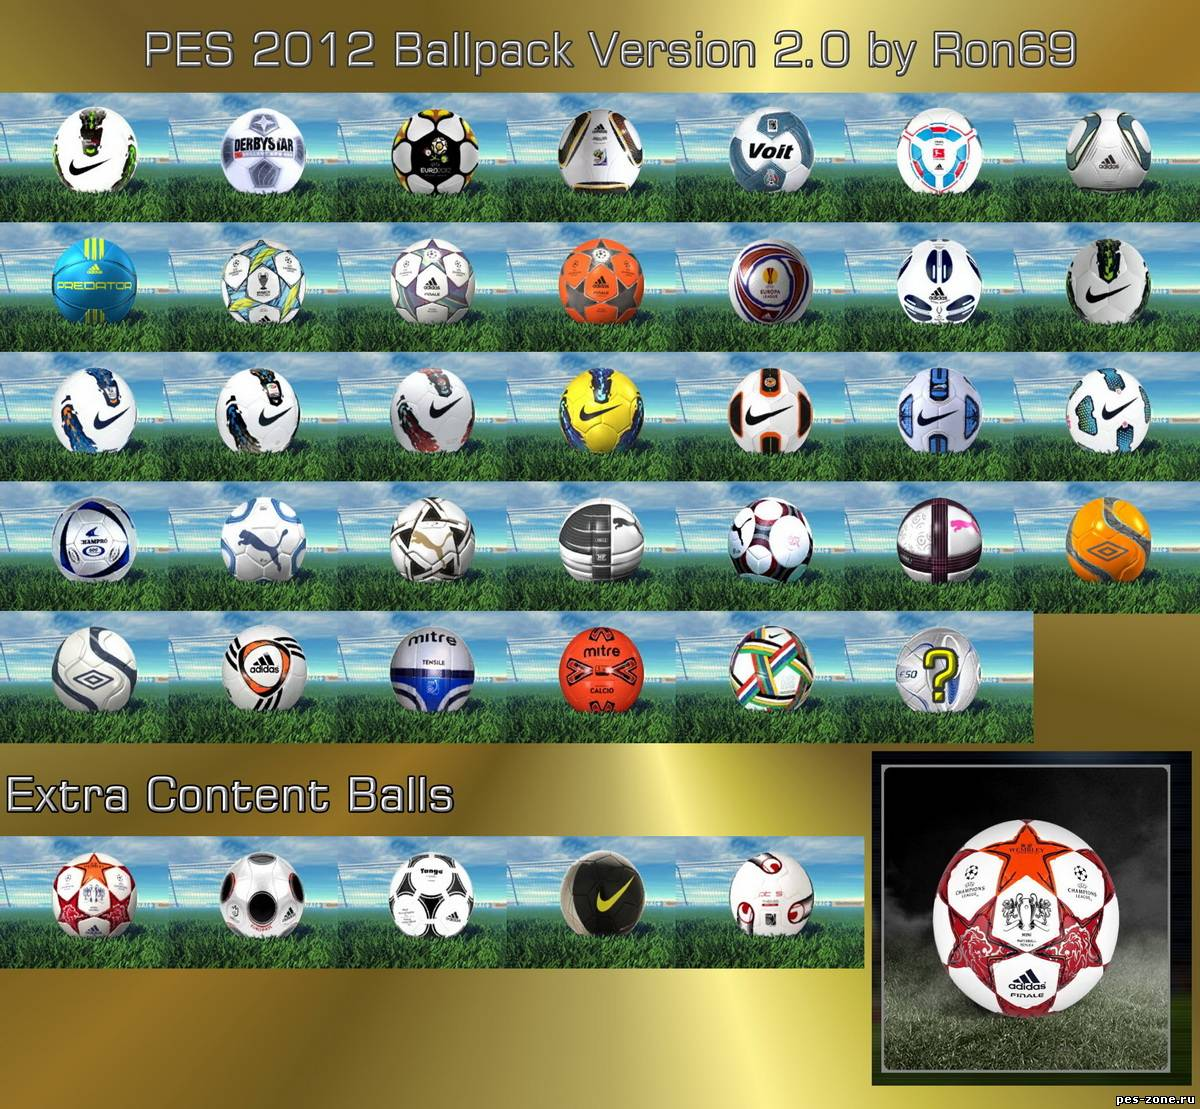 PES 2012 Ballpack version 2.0